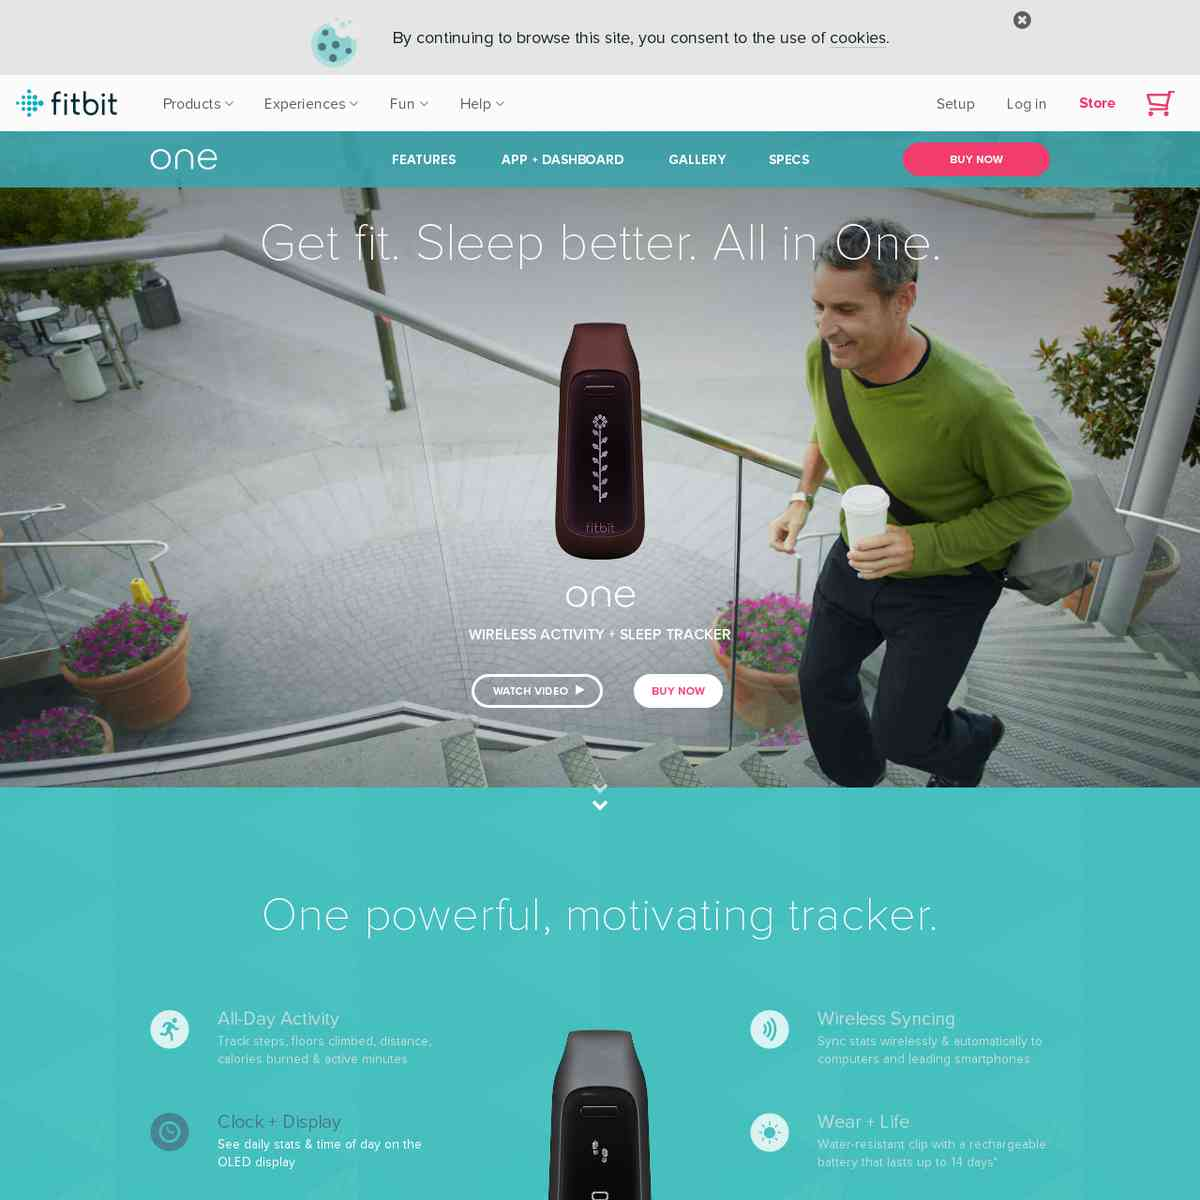 fitbit.com/one